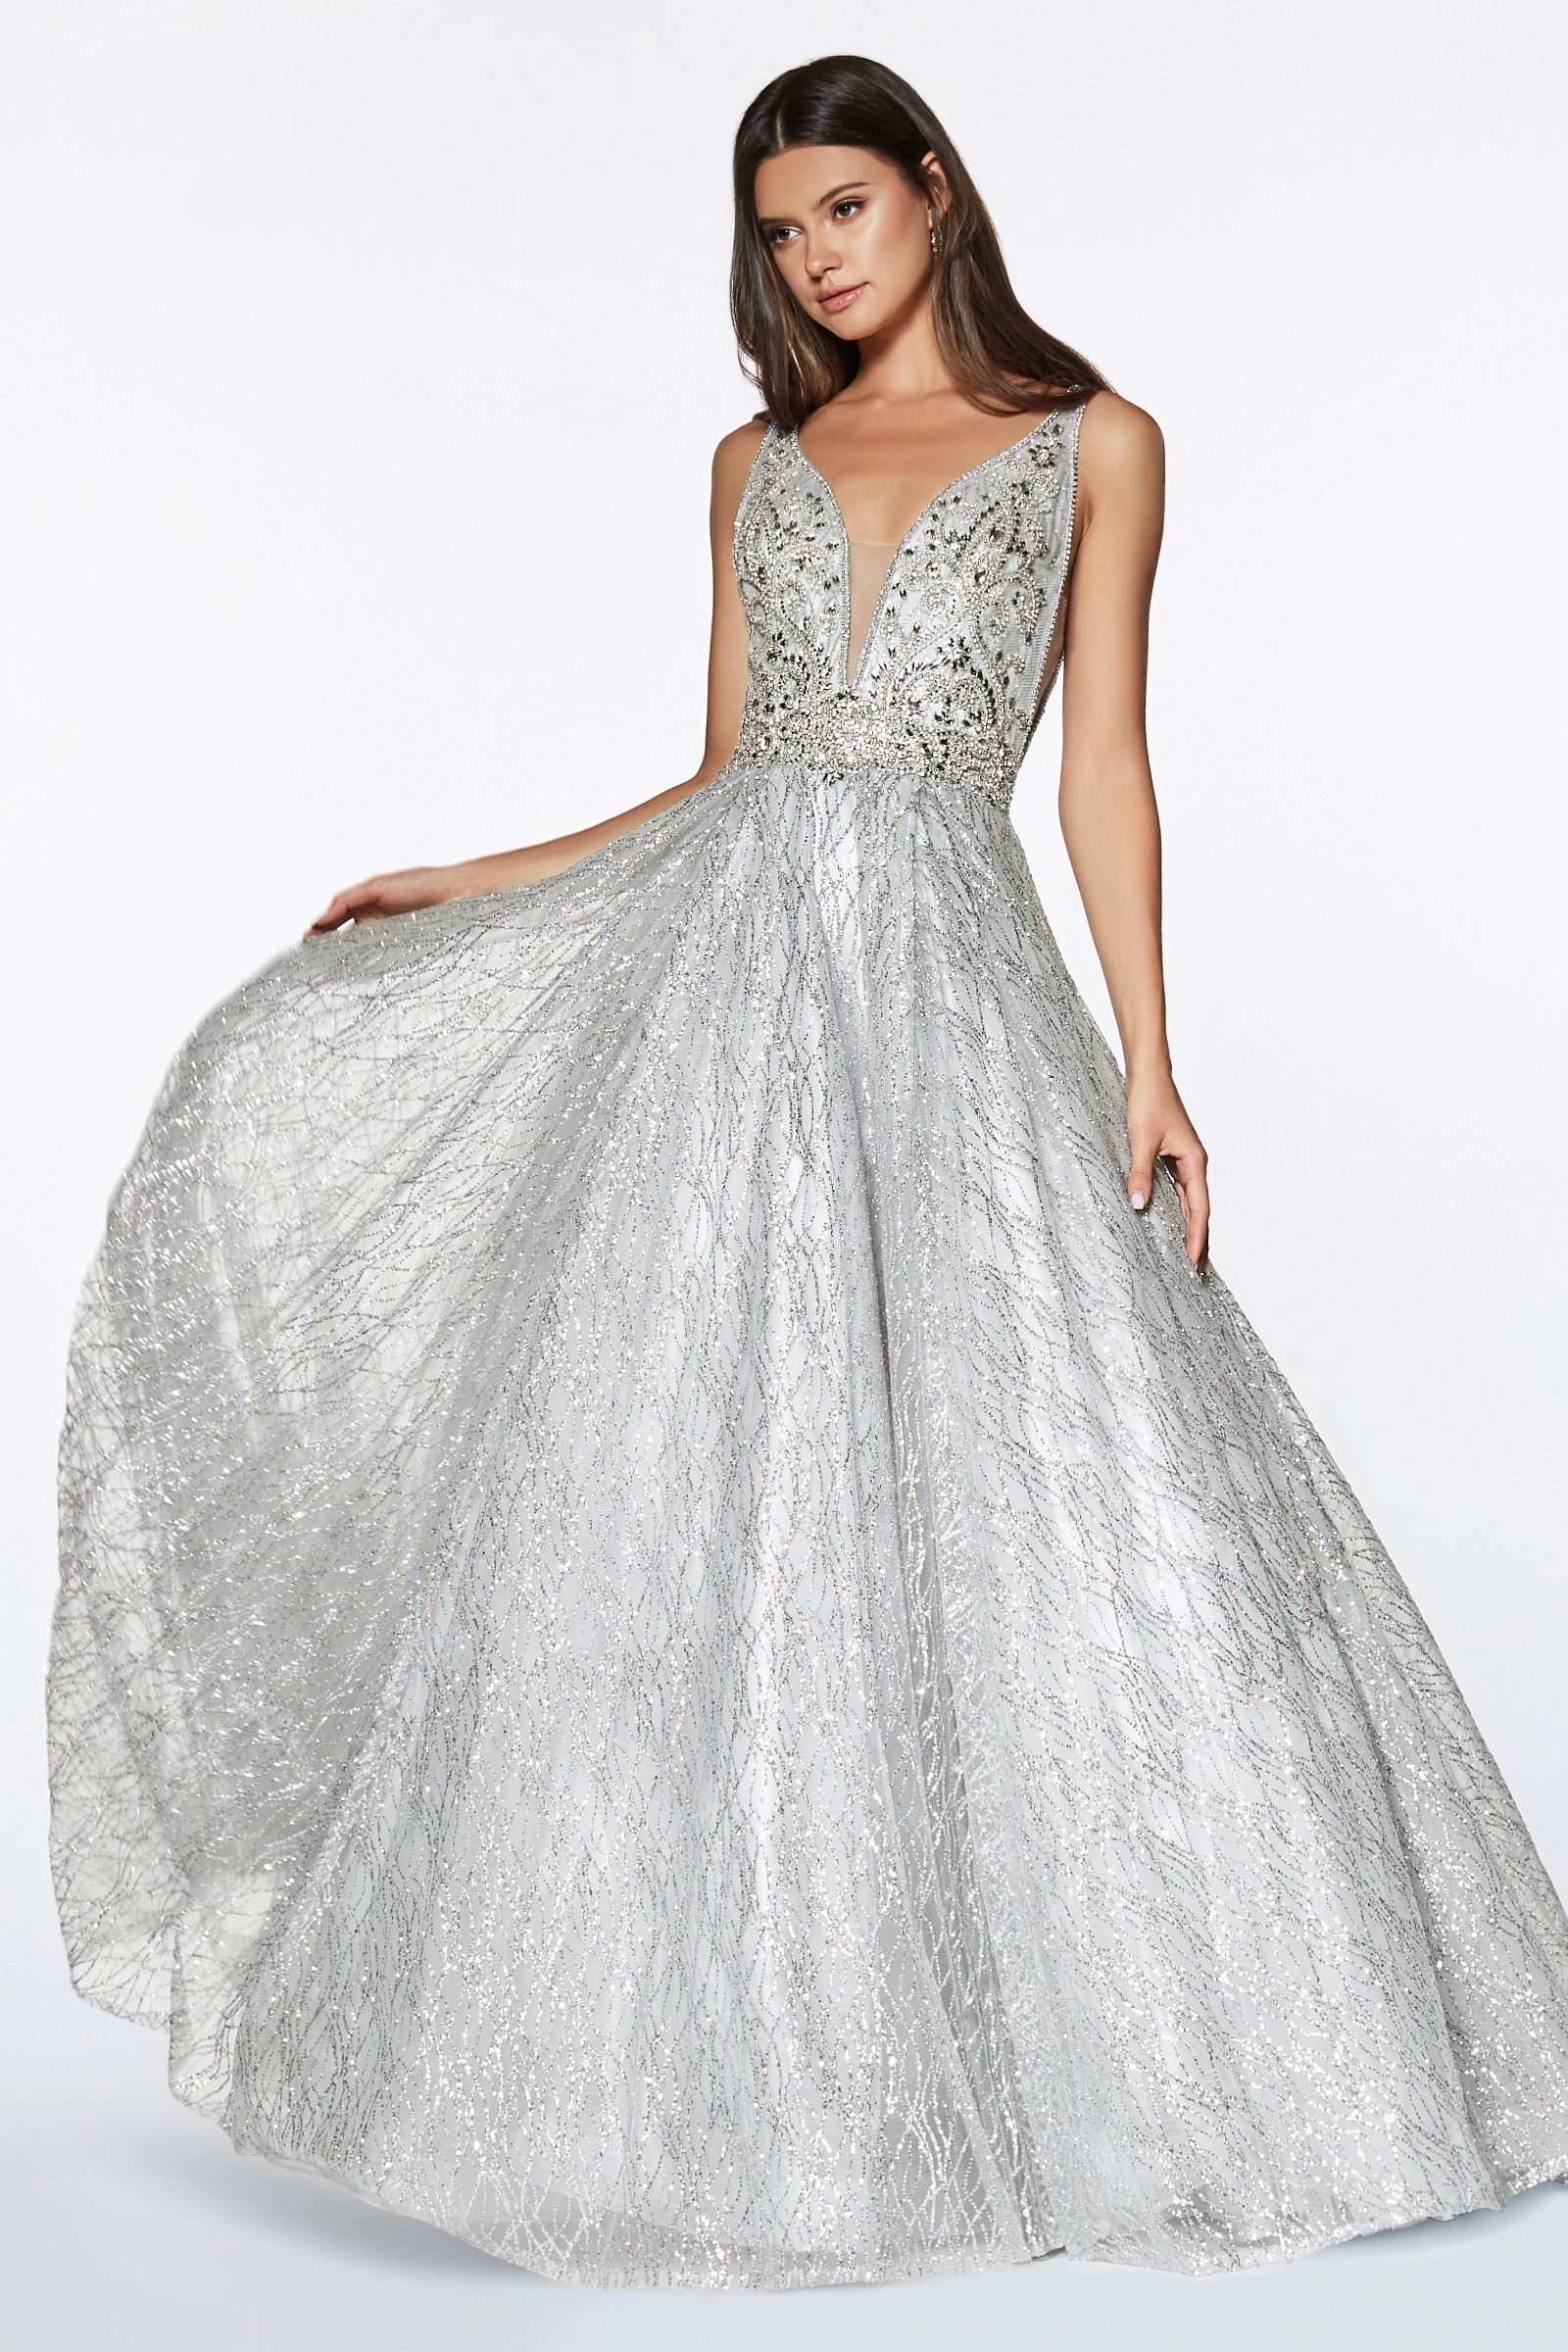 Cinderella Divine CR836 Evening Dress Prom Dress Glitter ball gown with beaded